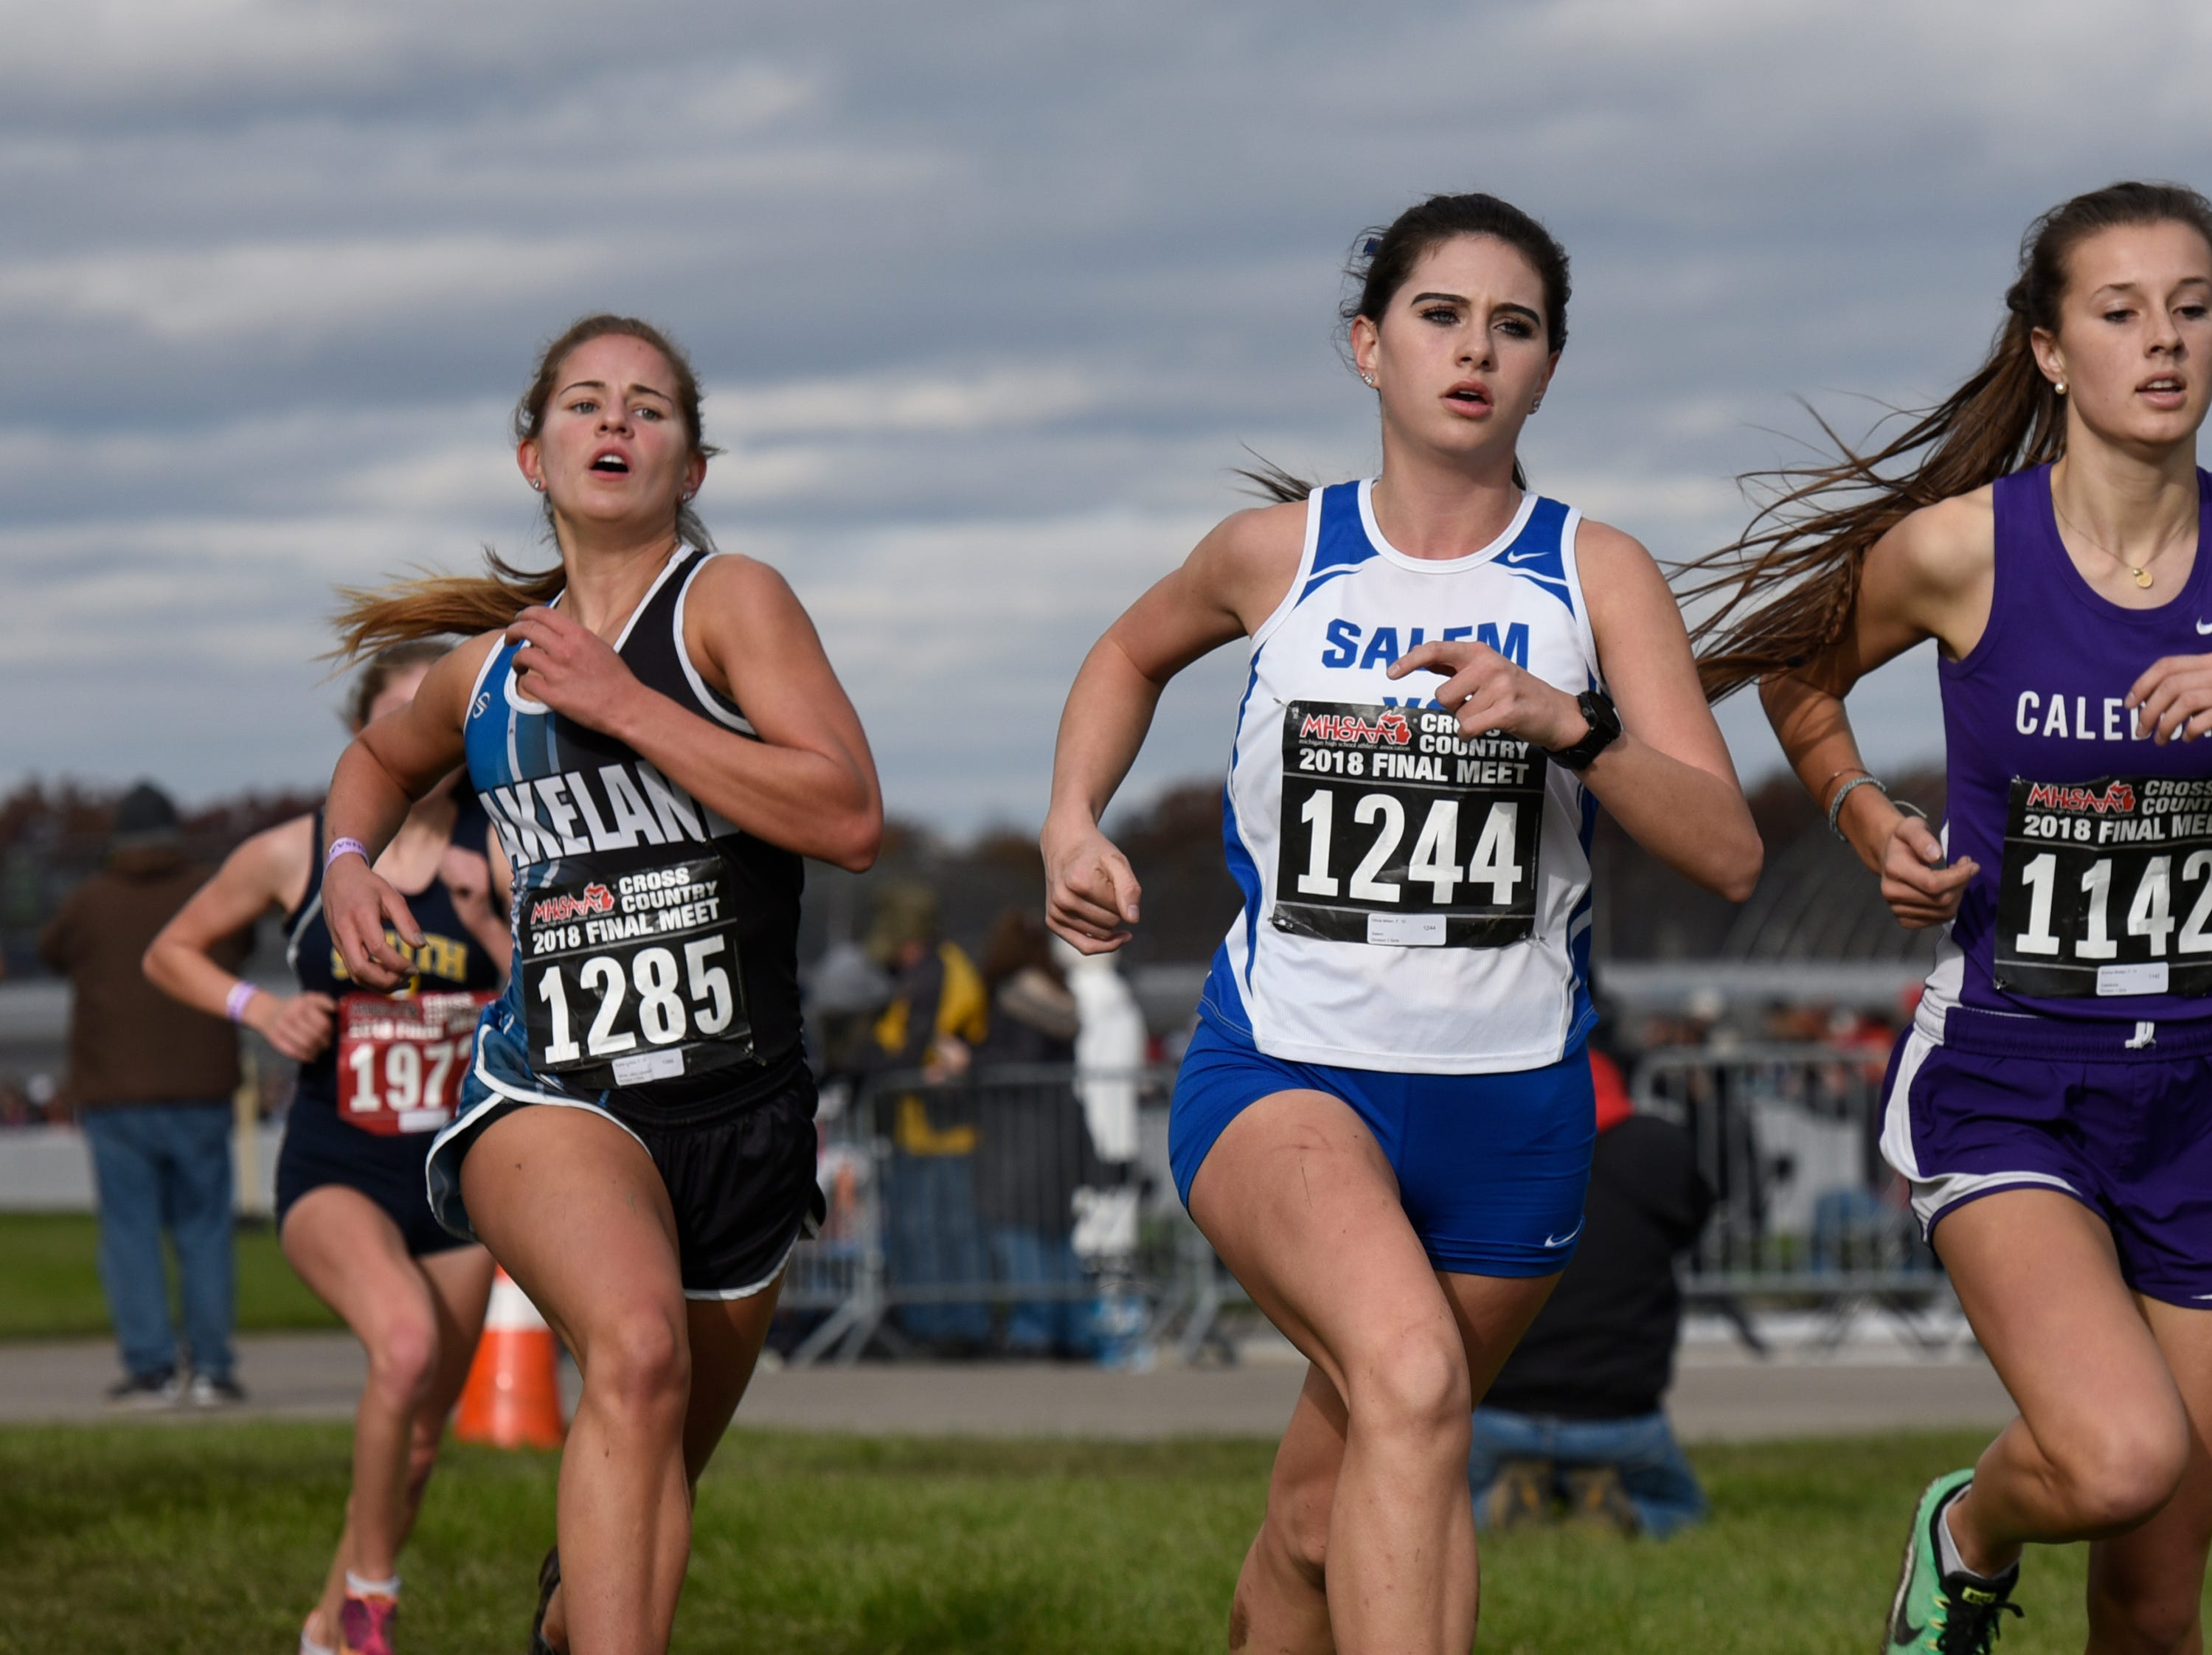 Salem's Olivia Millen (1244) and Lakeland's Rylee Lukes (1285) during the Division 1 2018 cross country finals at Michigan International Speedway.